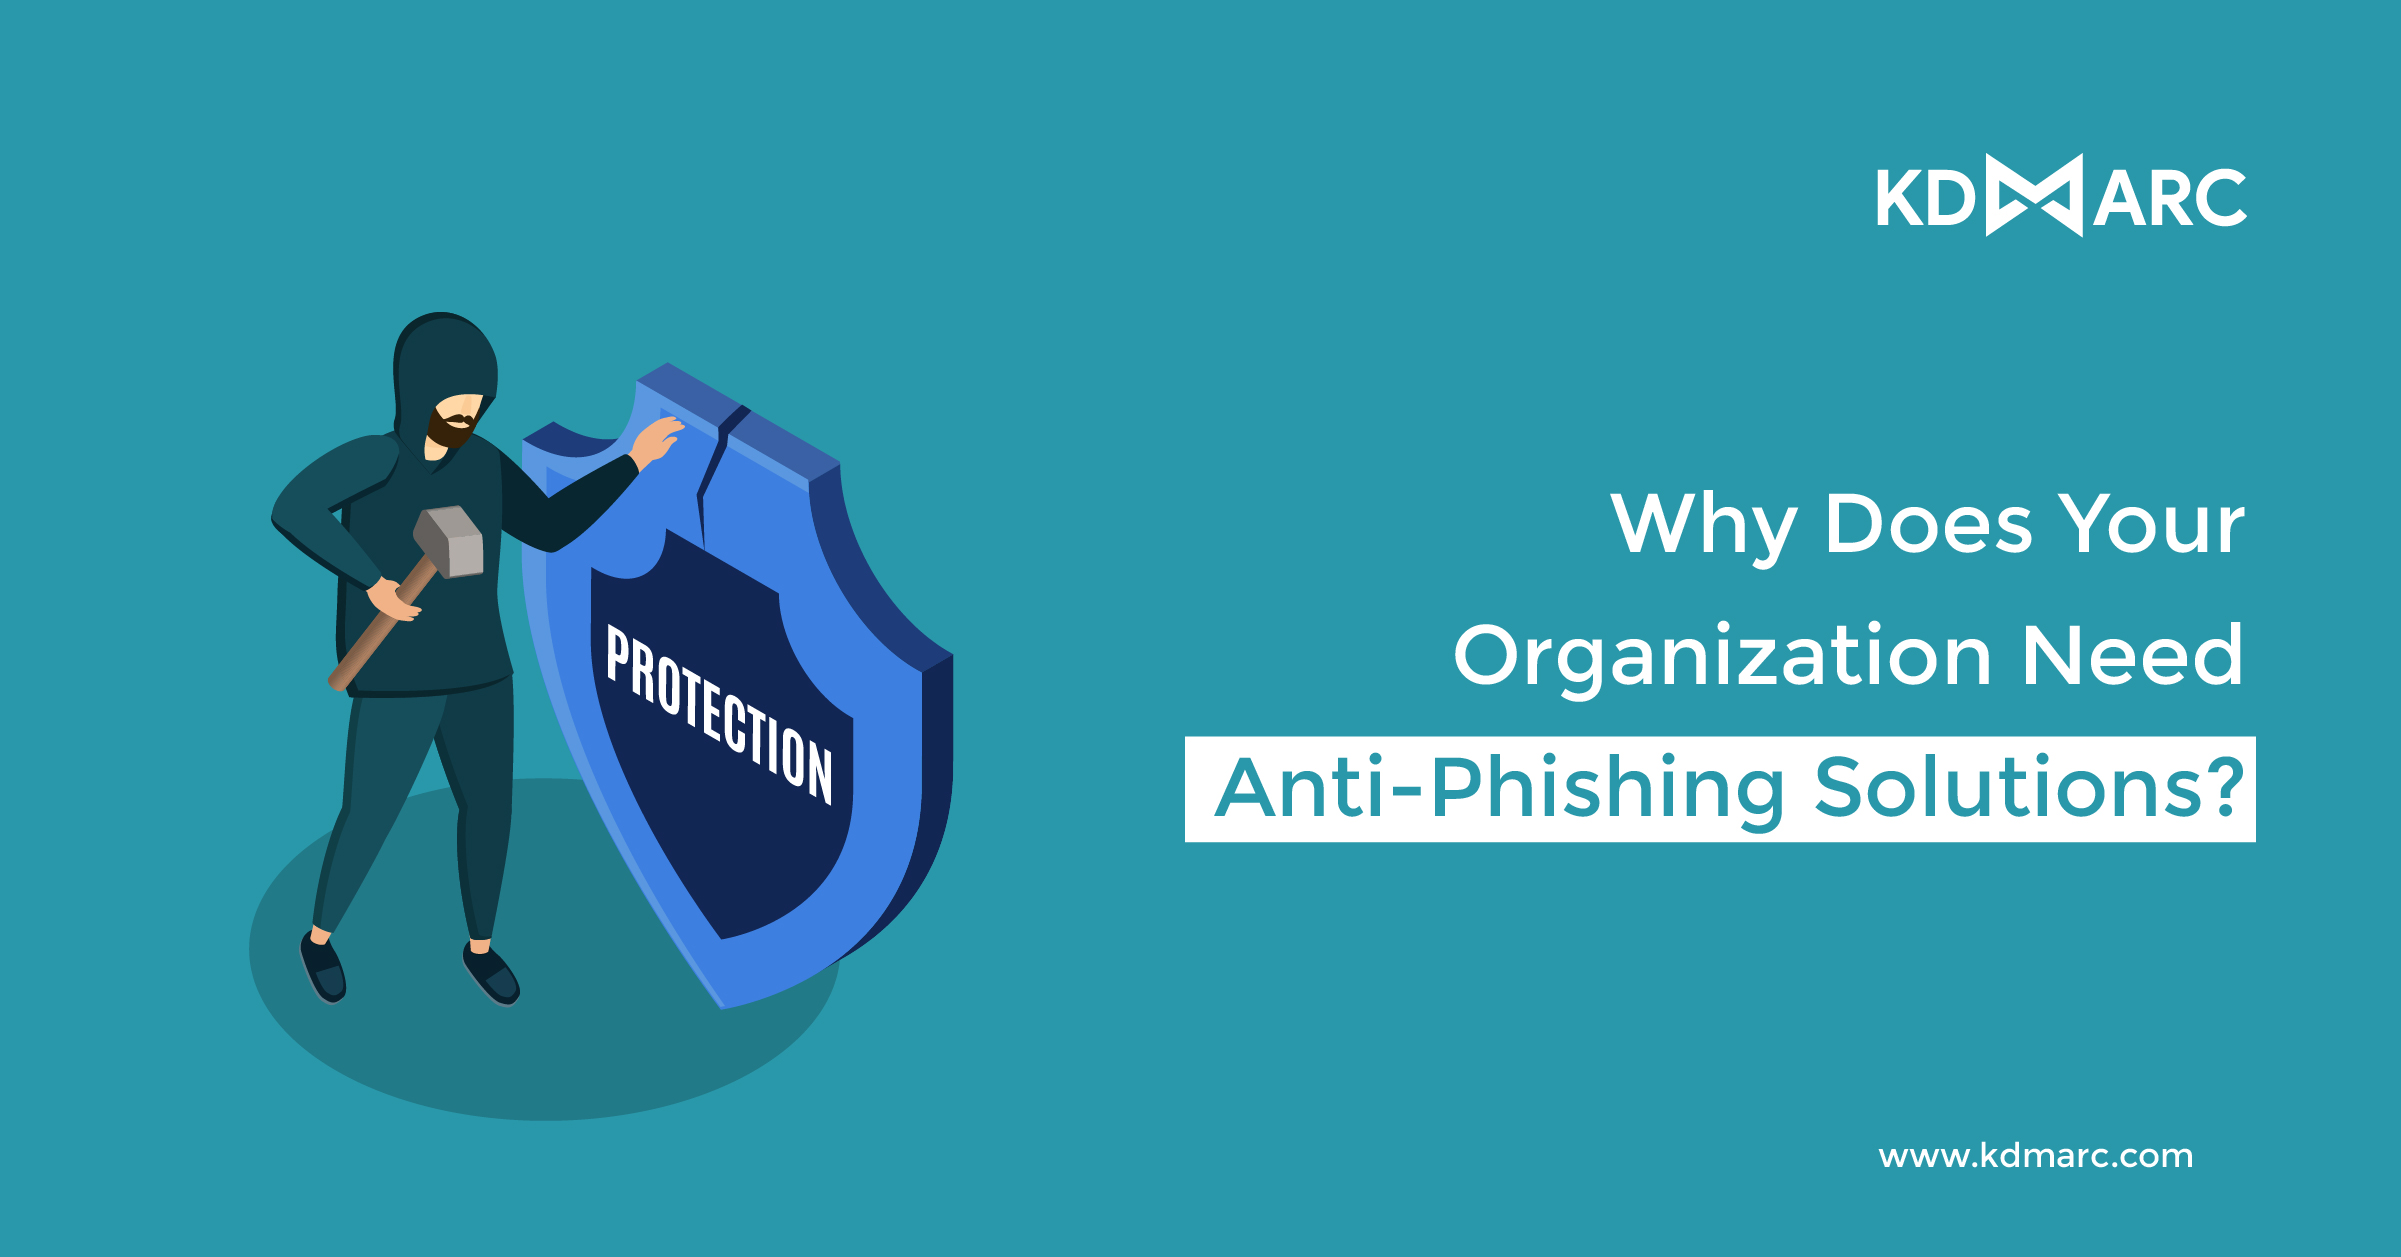 Why Does Your Organization Need Anti-Phishing Solutions?